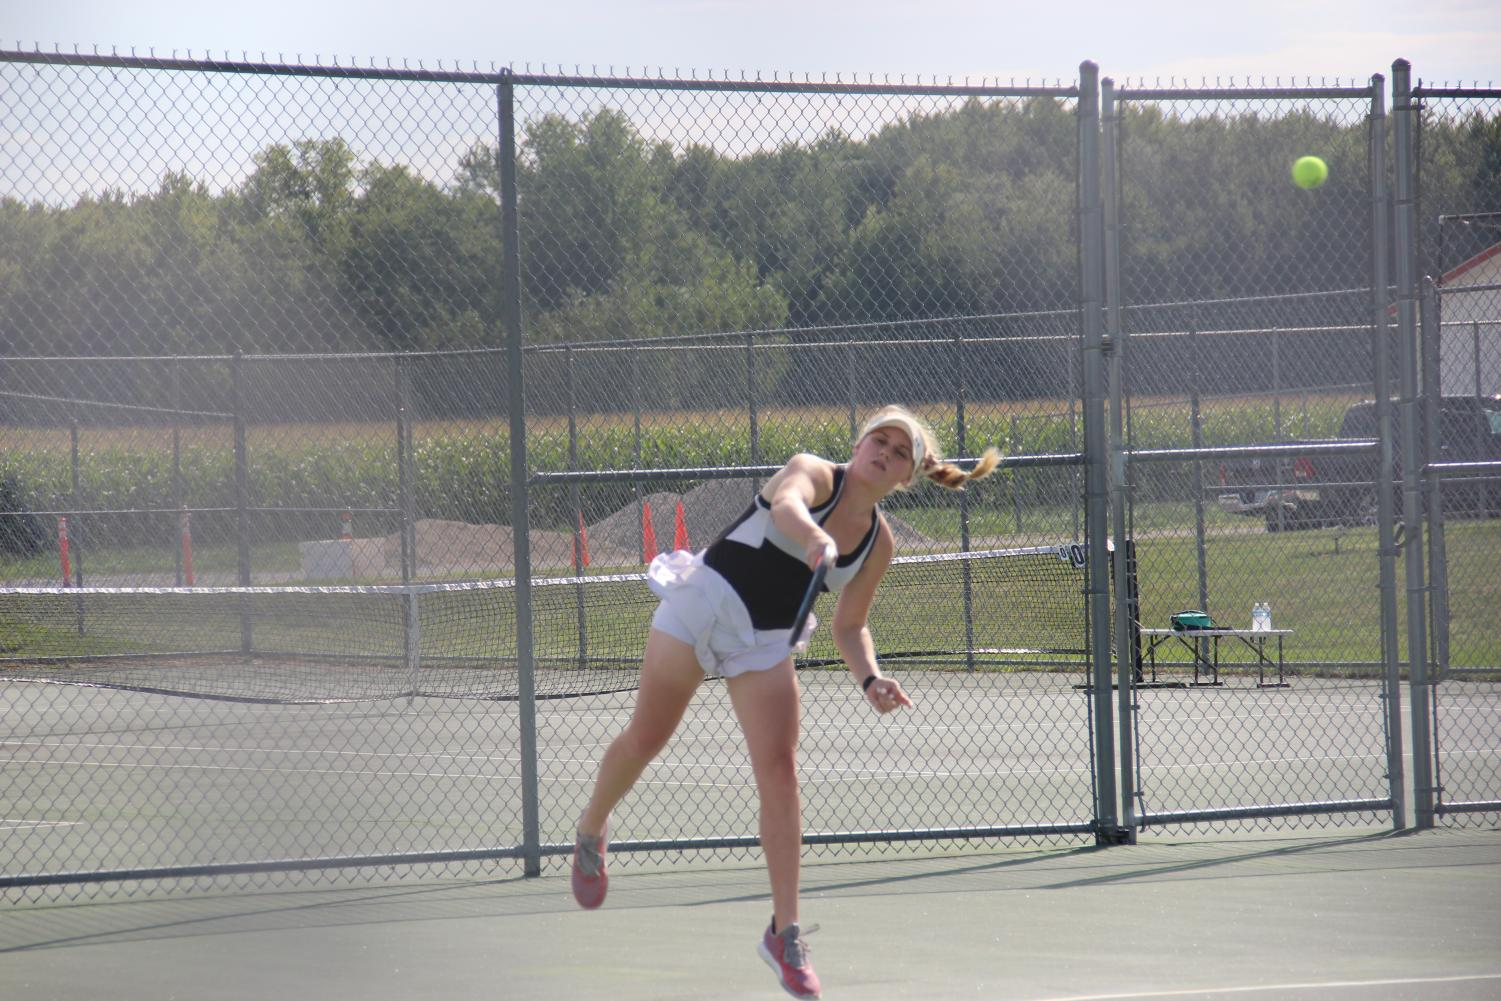 Grove concentrates on her swing as she sends the ball over the net.